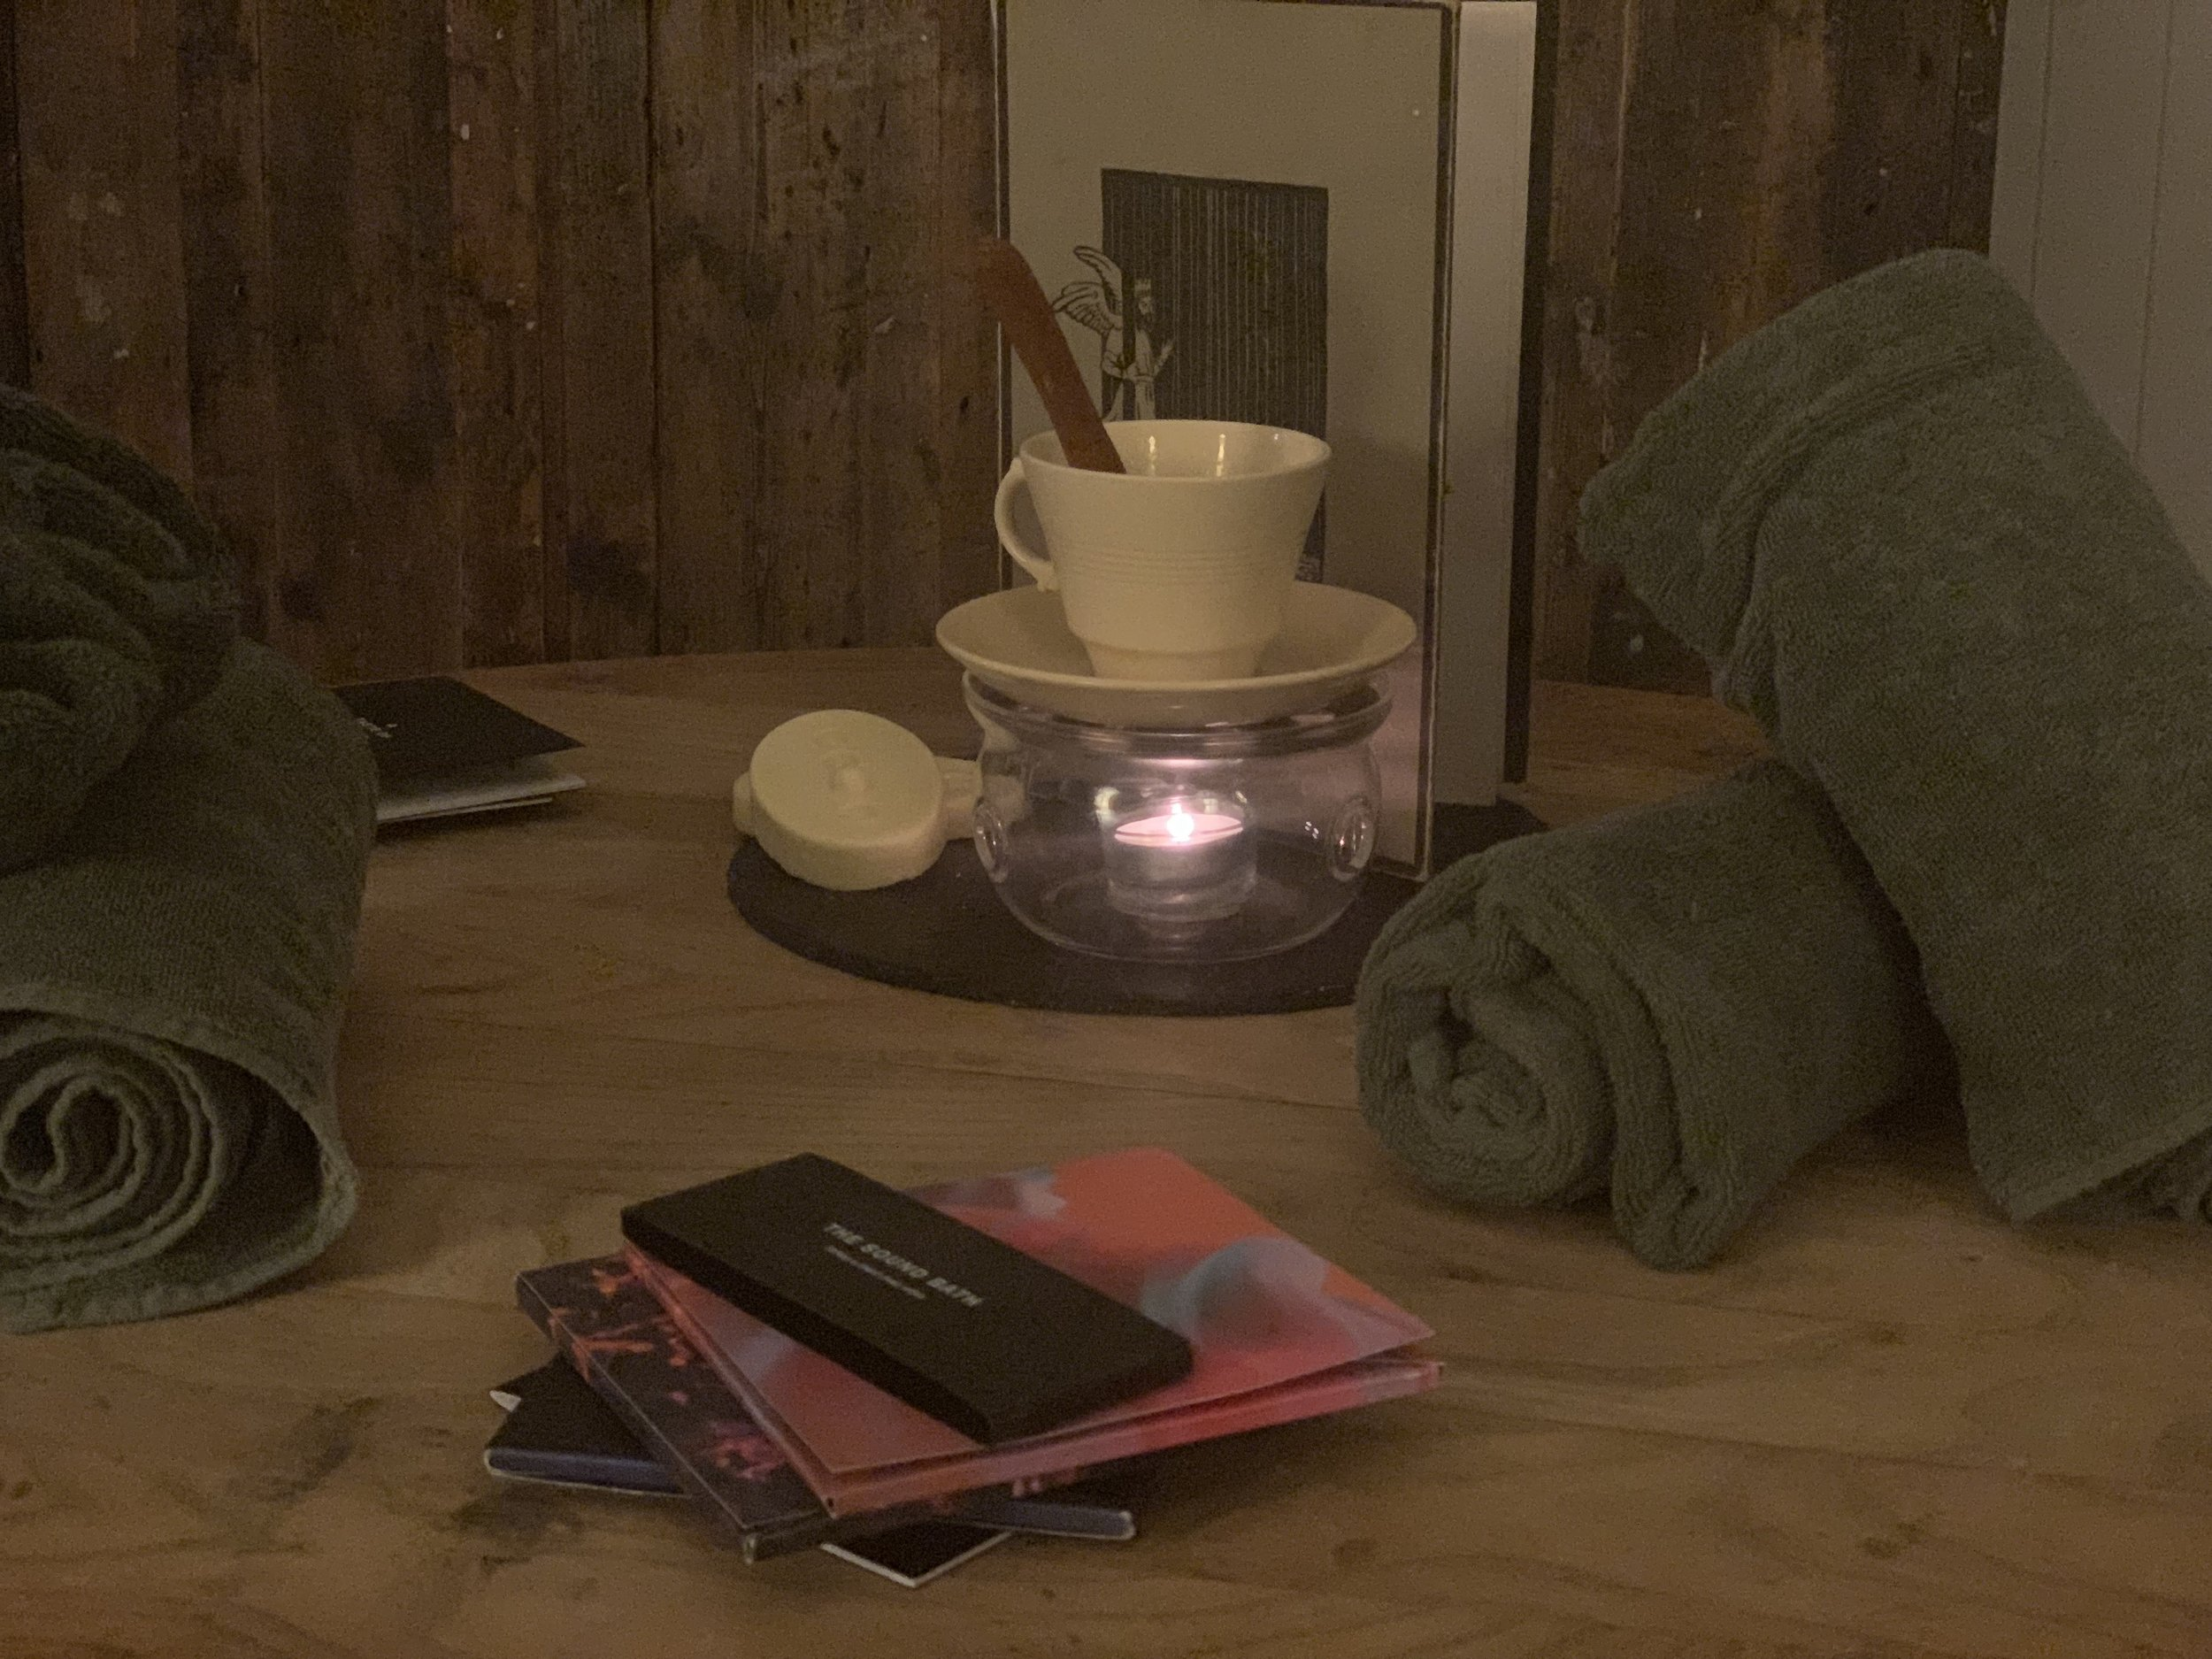 A picture of towels and Lush pregnancy products at the Lush spa in Liverpool